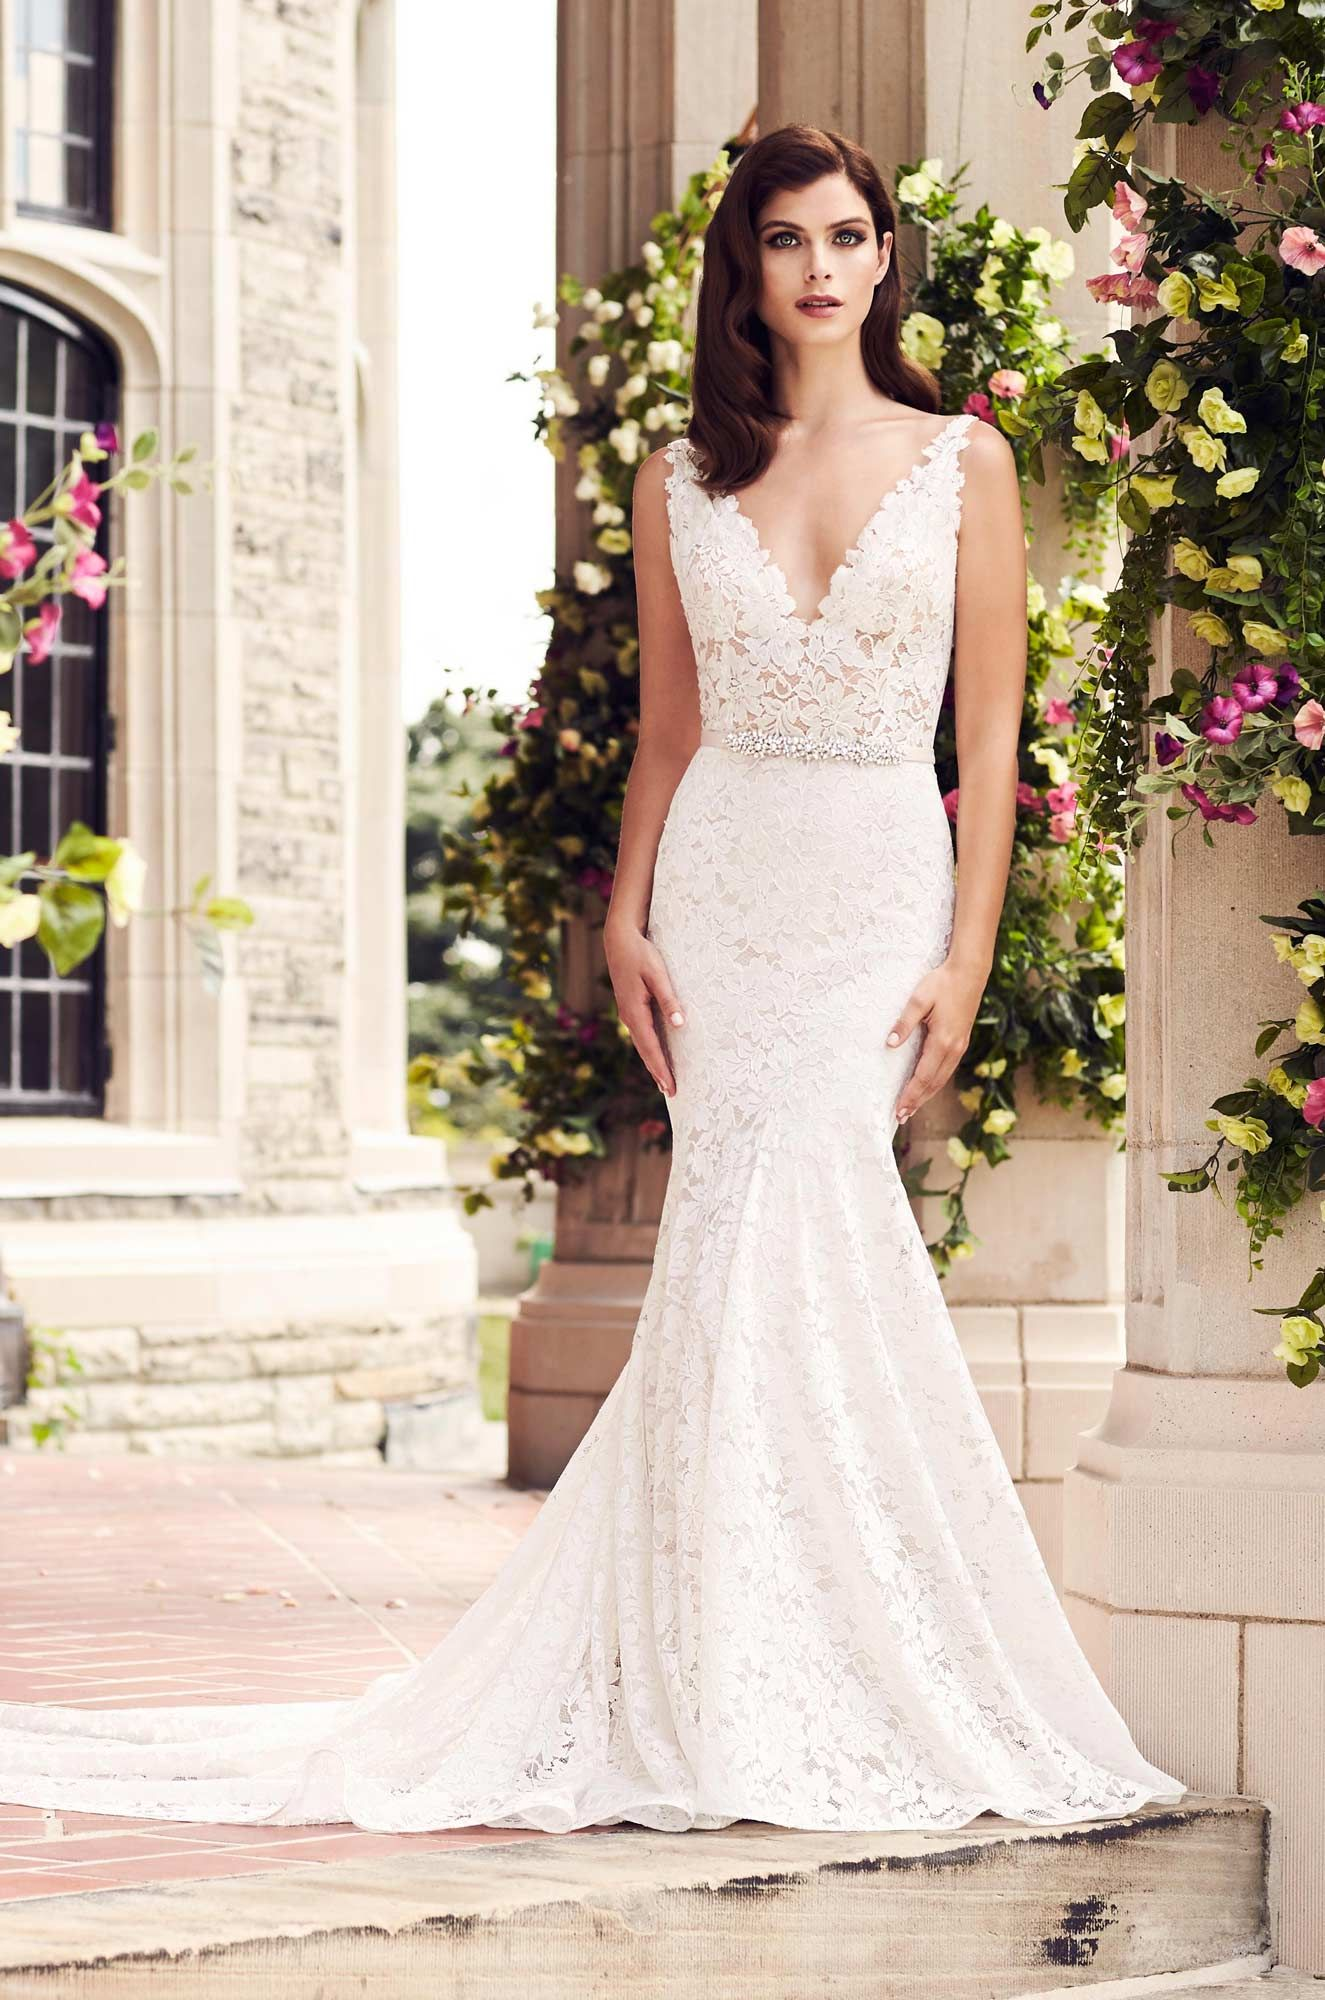 Paloma Blanca Wedding Dress Style 4746 Lace Gown With Vneckline On Bodice Lined In Nude Tulle Appliqu�s Around Entire Neckline: Paloma Blanca Wedding Dresses At Reisefeber.org